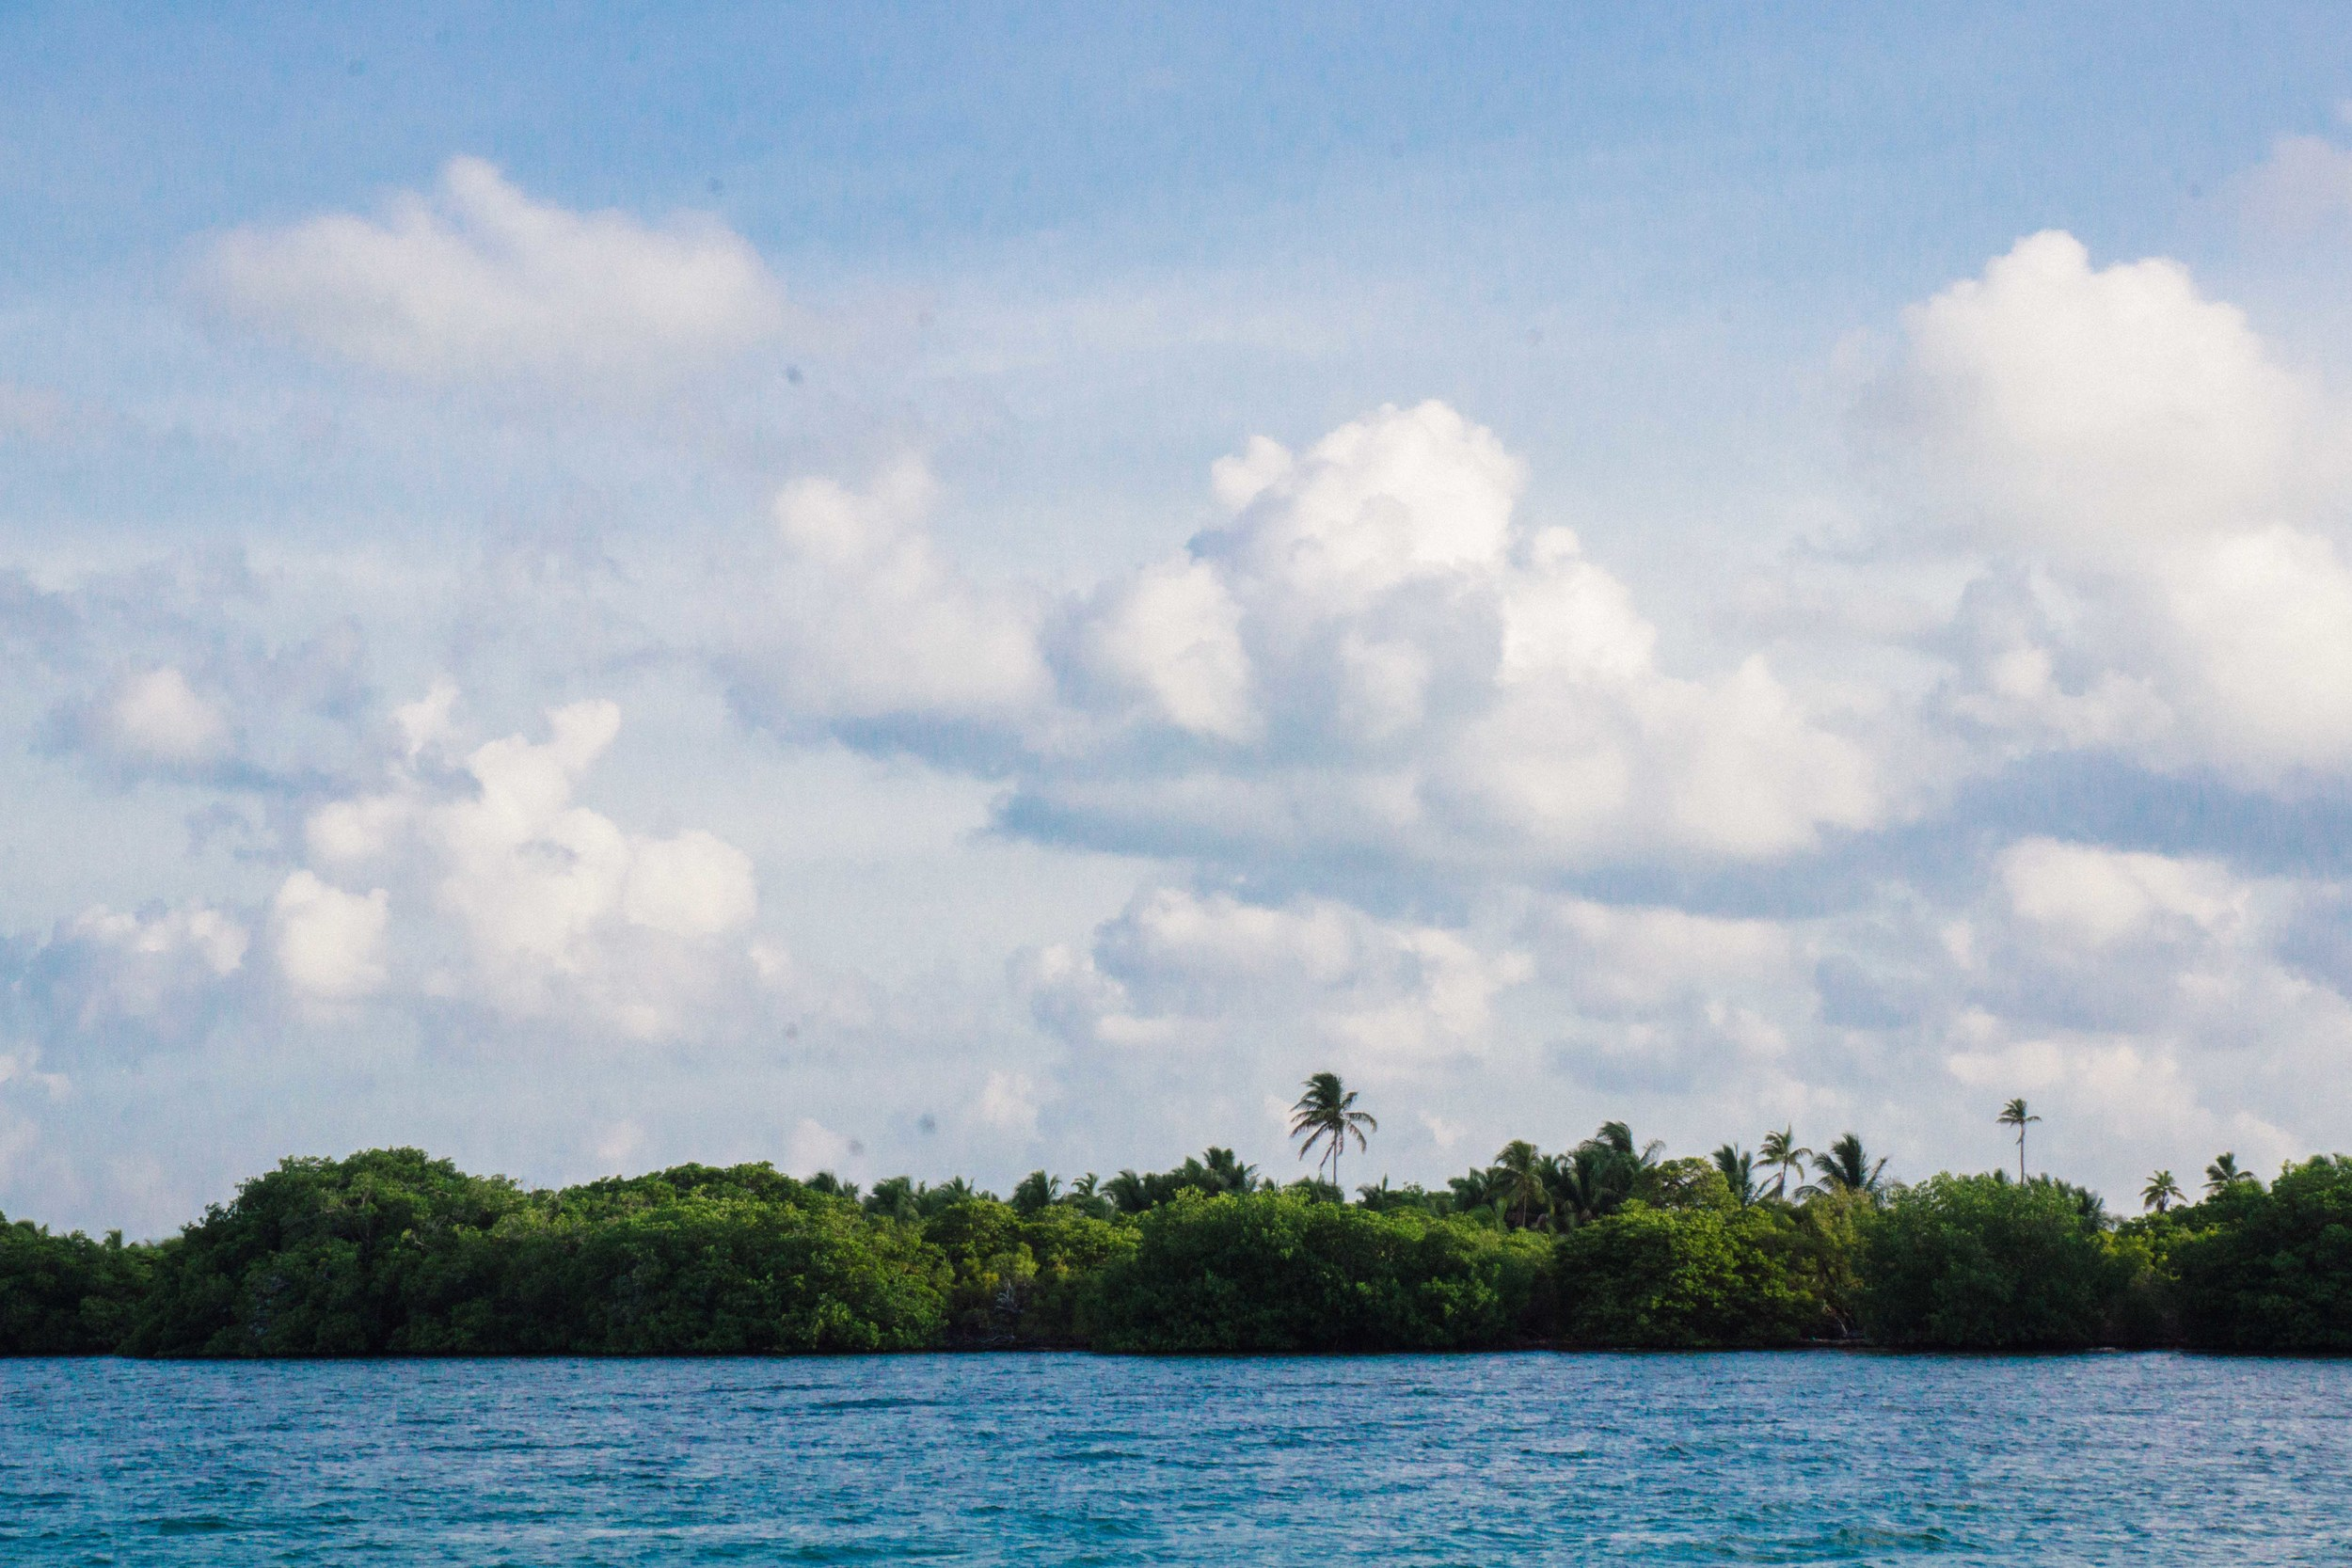 Passing Cayo Culebra, from the north.